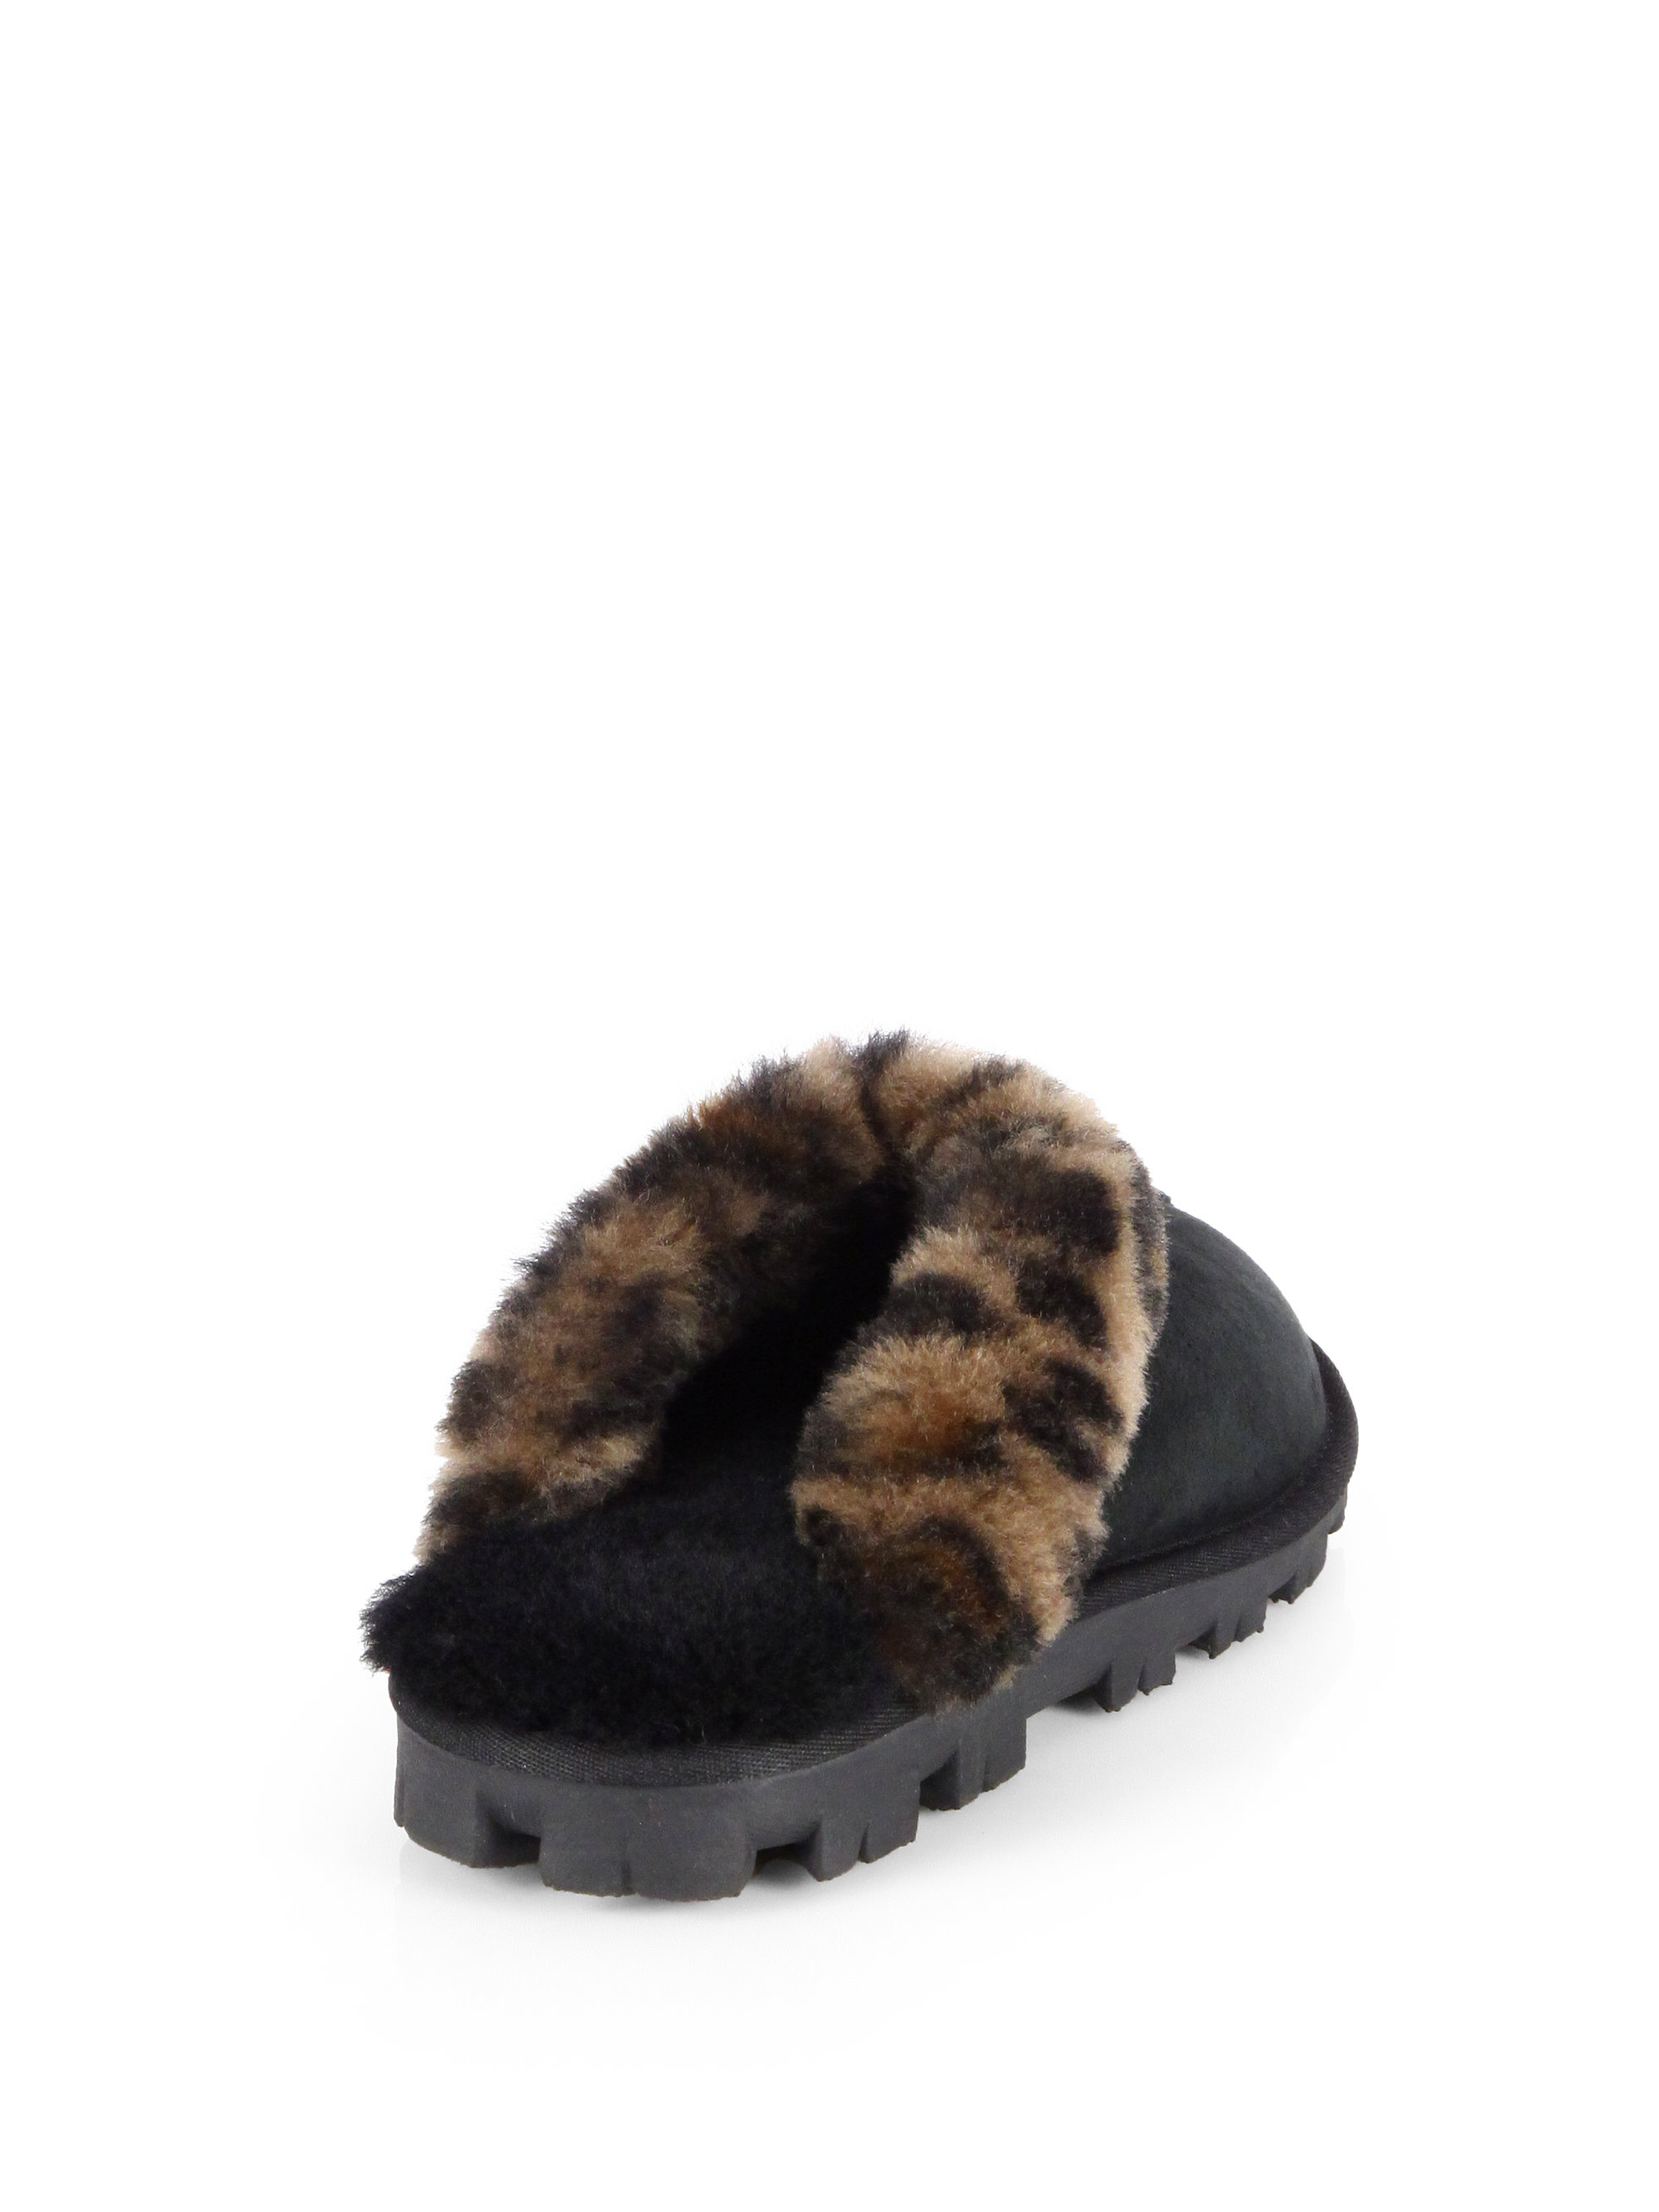 Ugg Coquette Leopard Print Sheepskin Slippers In Black Lyst